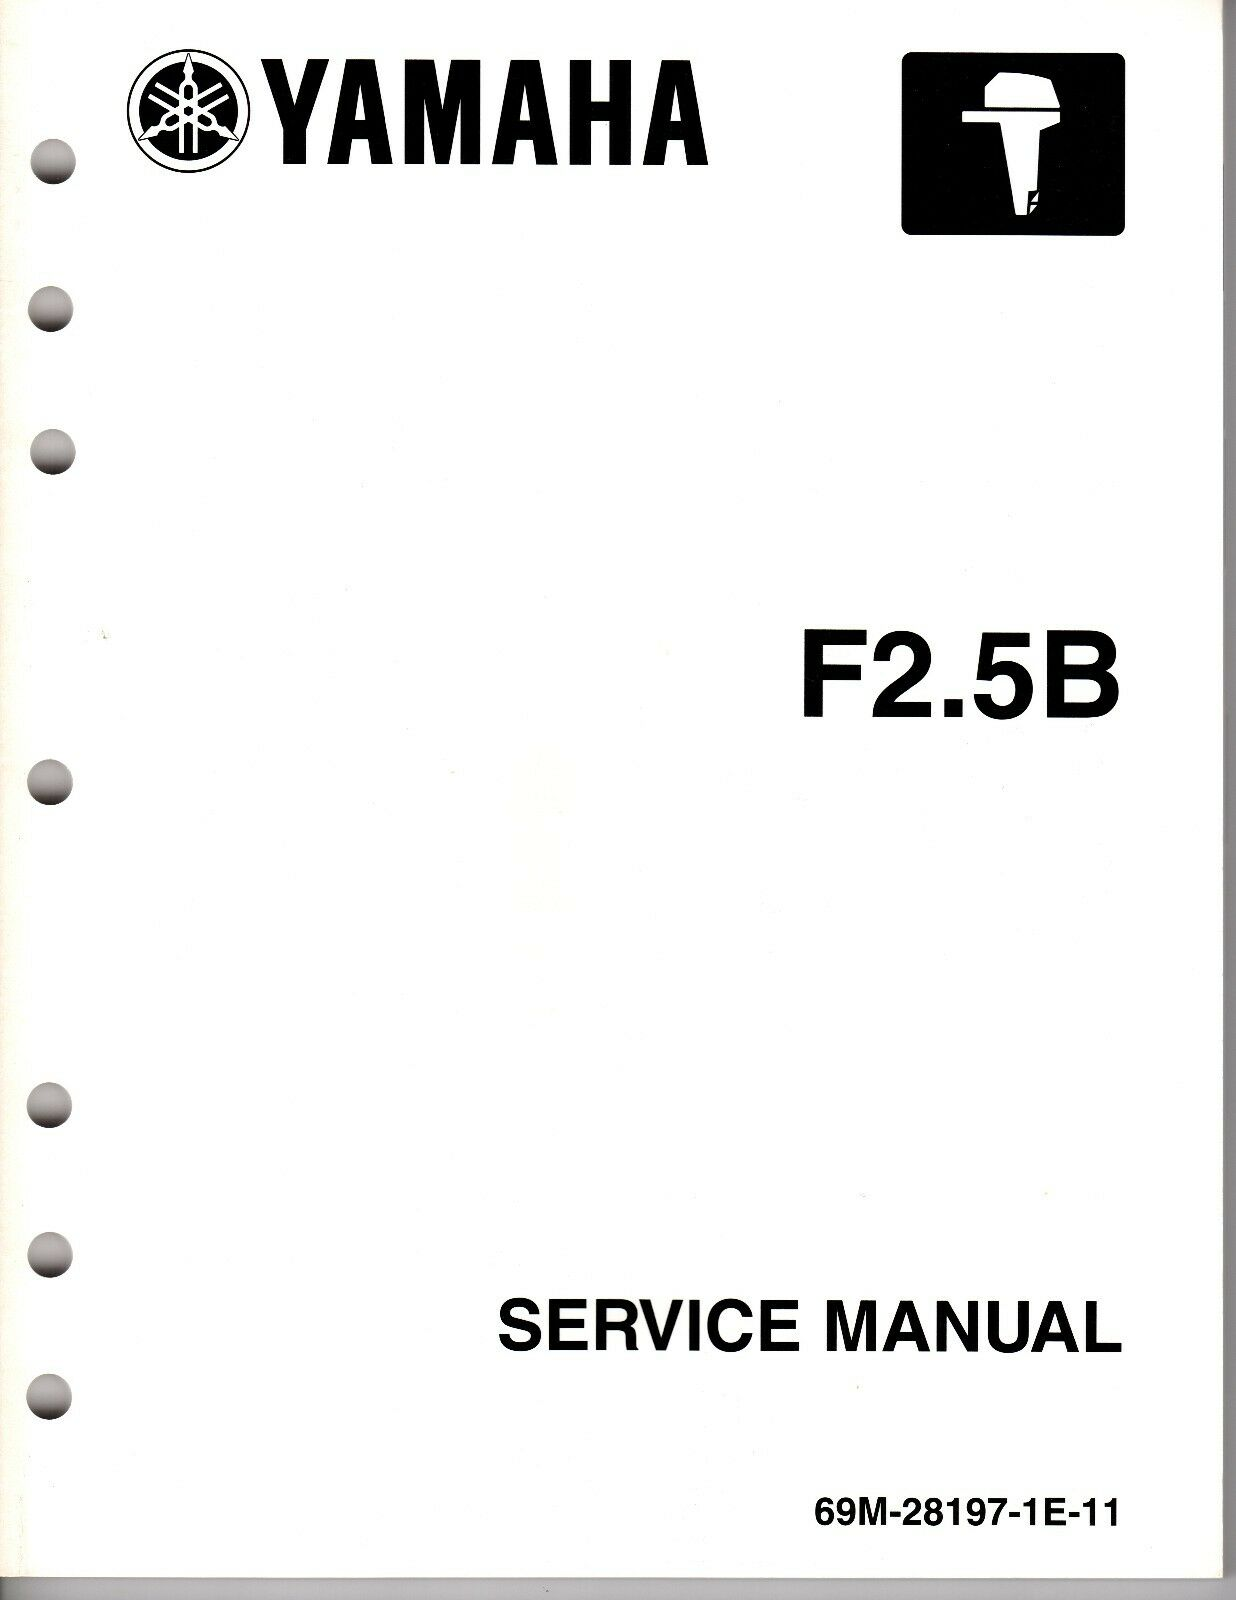 2003 YAMAHA OUTBOARD SERVICE MANUAL F2.5B  FOUR STROKE  (Part # LIT-18616-02-42)